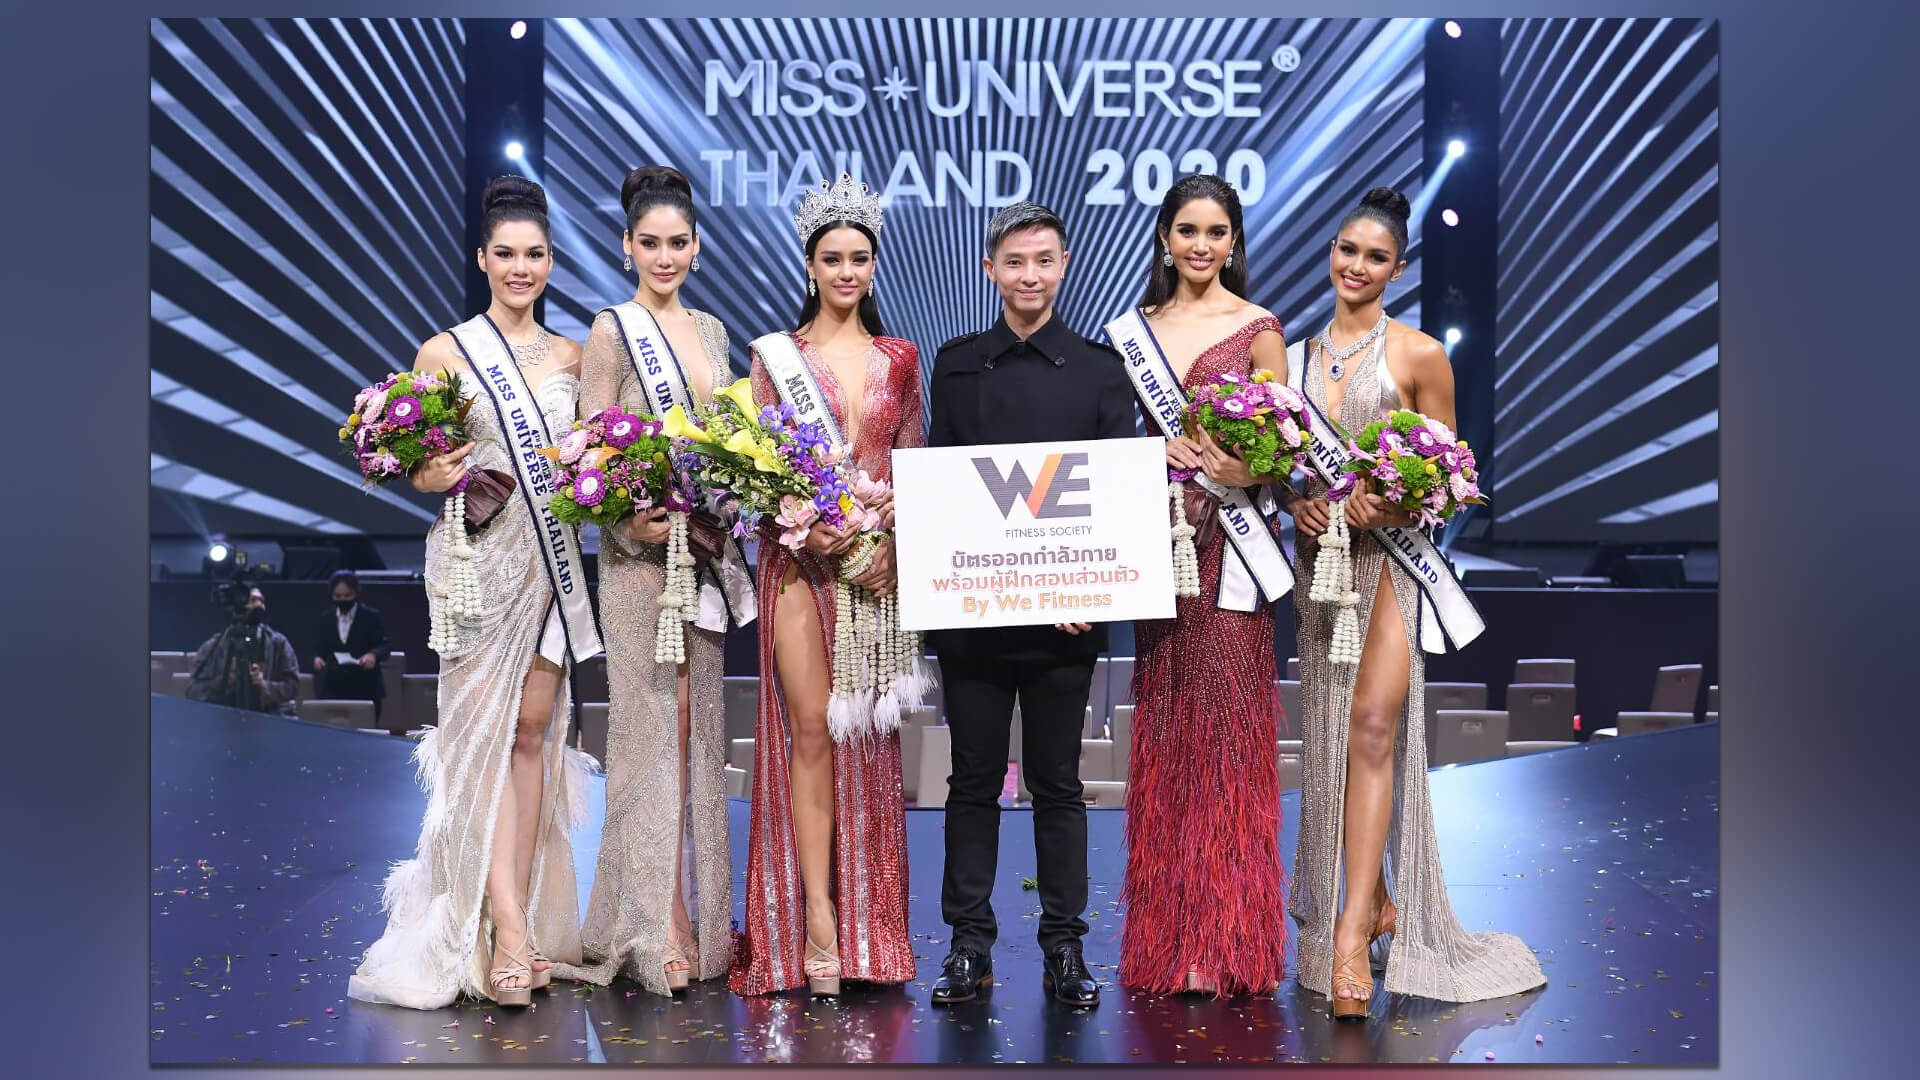 WE Fitness x Miss Universe Thailand 2020